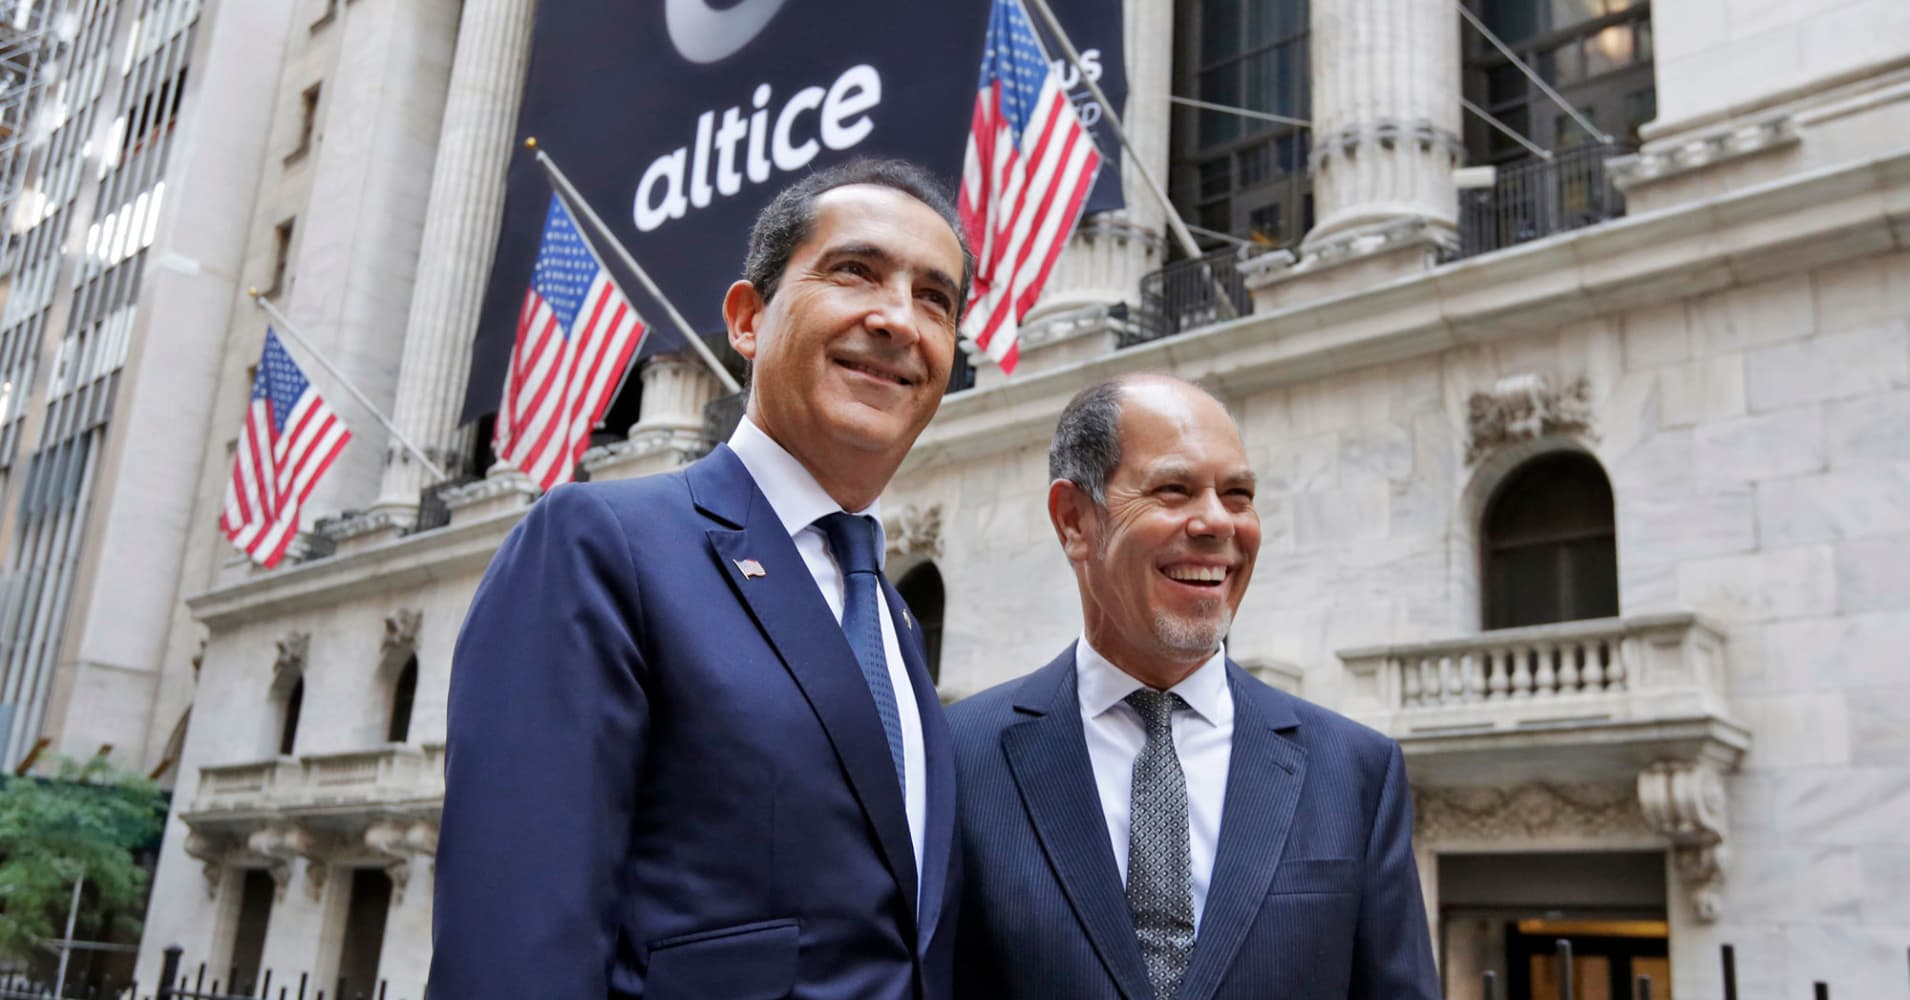 Cable giant Altice USA pops more than 5% in $1.9 billion IPO